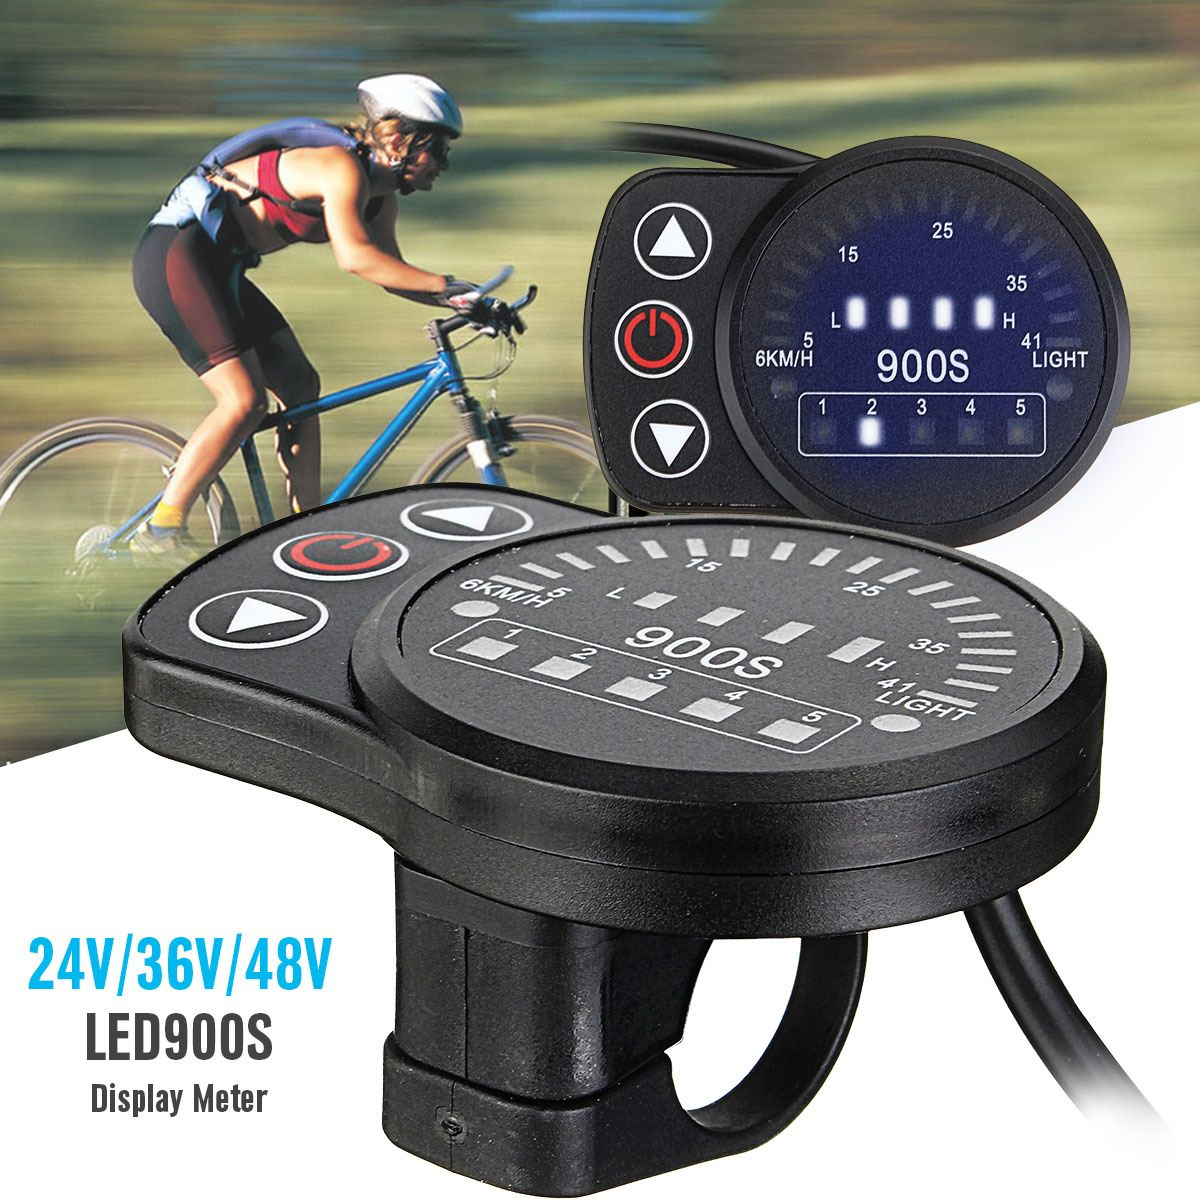 Precise Ebike Led Display Electric Bicycle Control Panel Electric Scooter Display Meter Intelligent 24v/36v/48v Kt-led900s Bike Electric Vehicle Parts Accessories